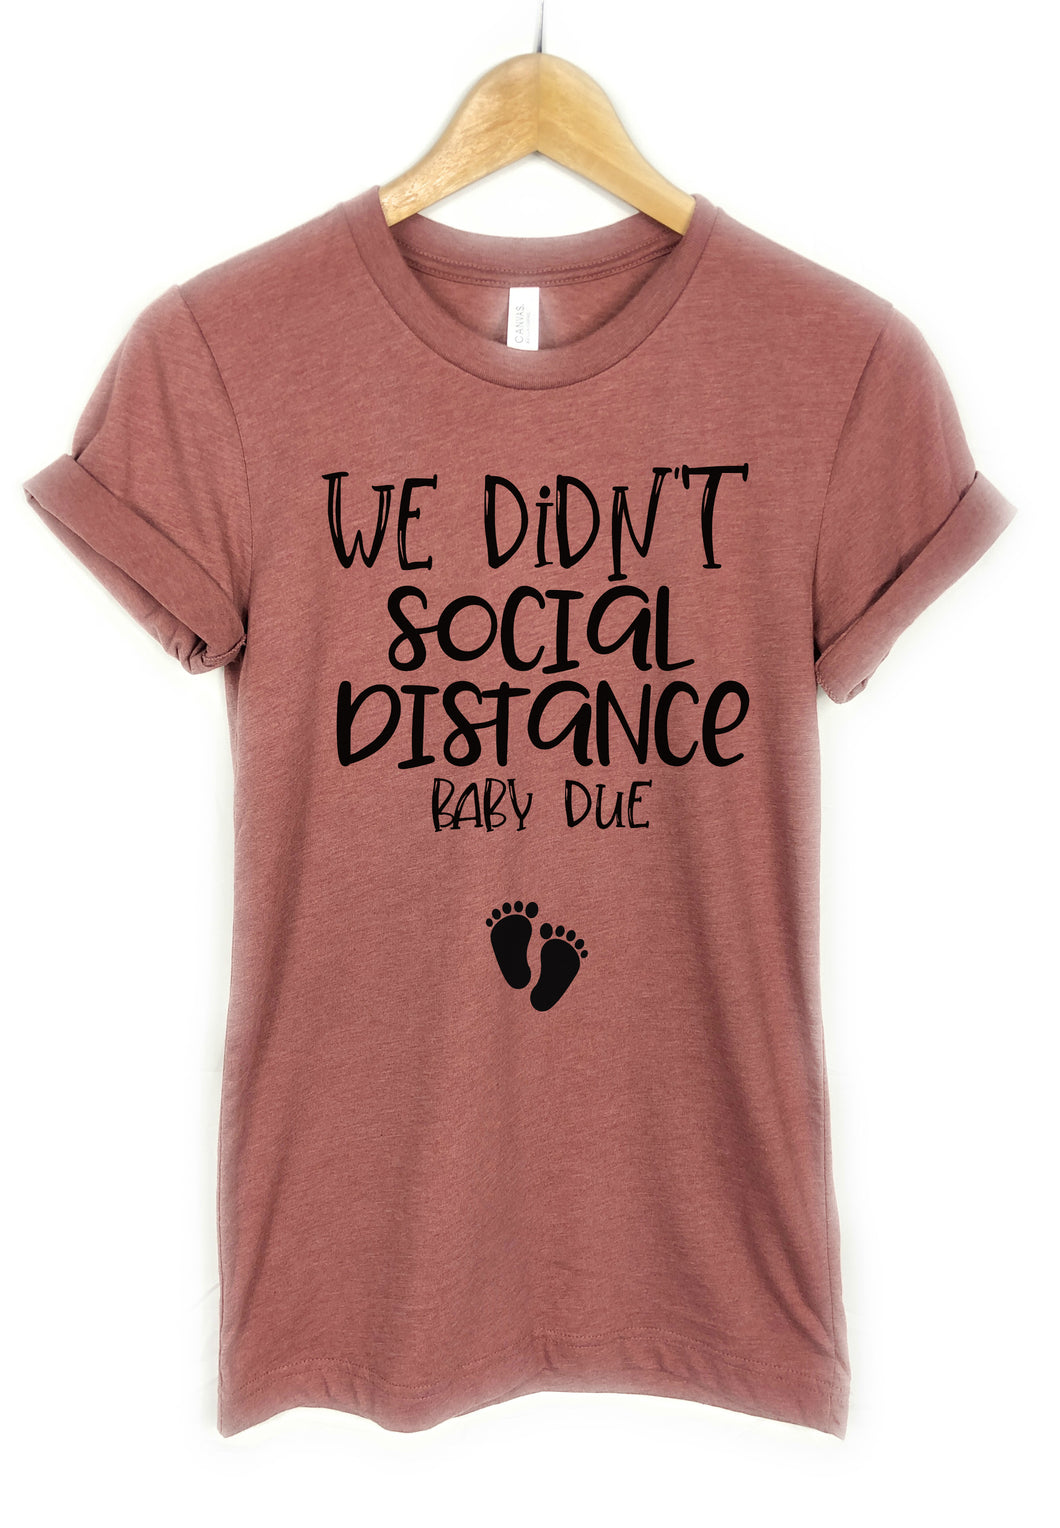 We didn't Social Distance baby due, Pregnancy announcement